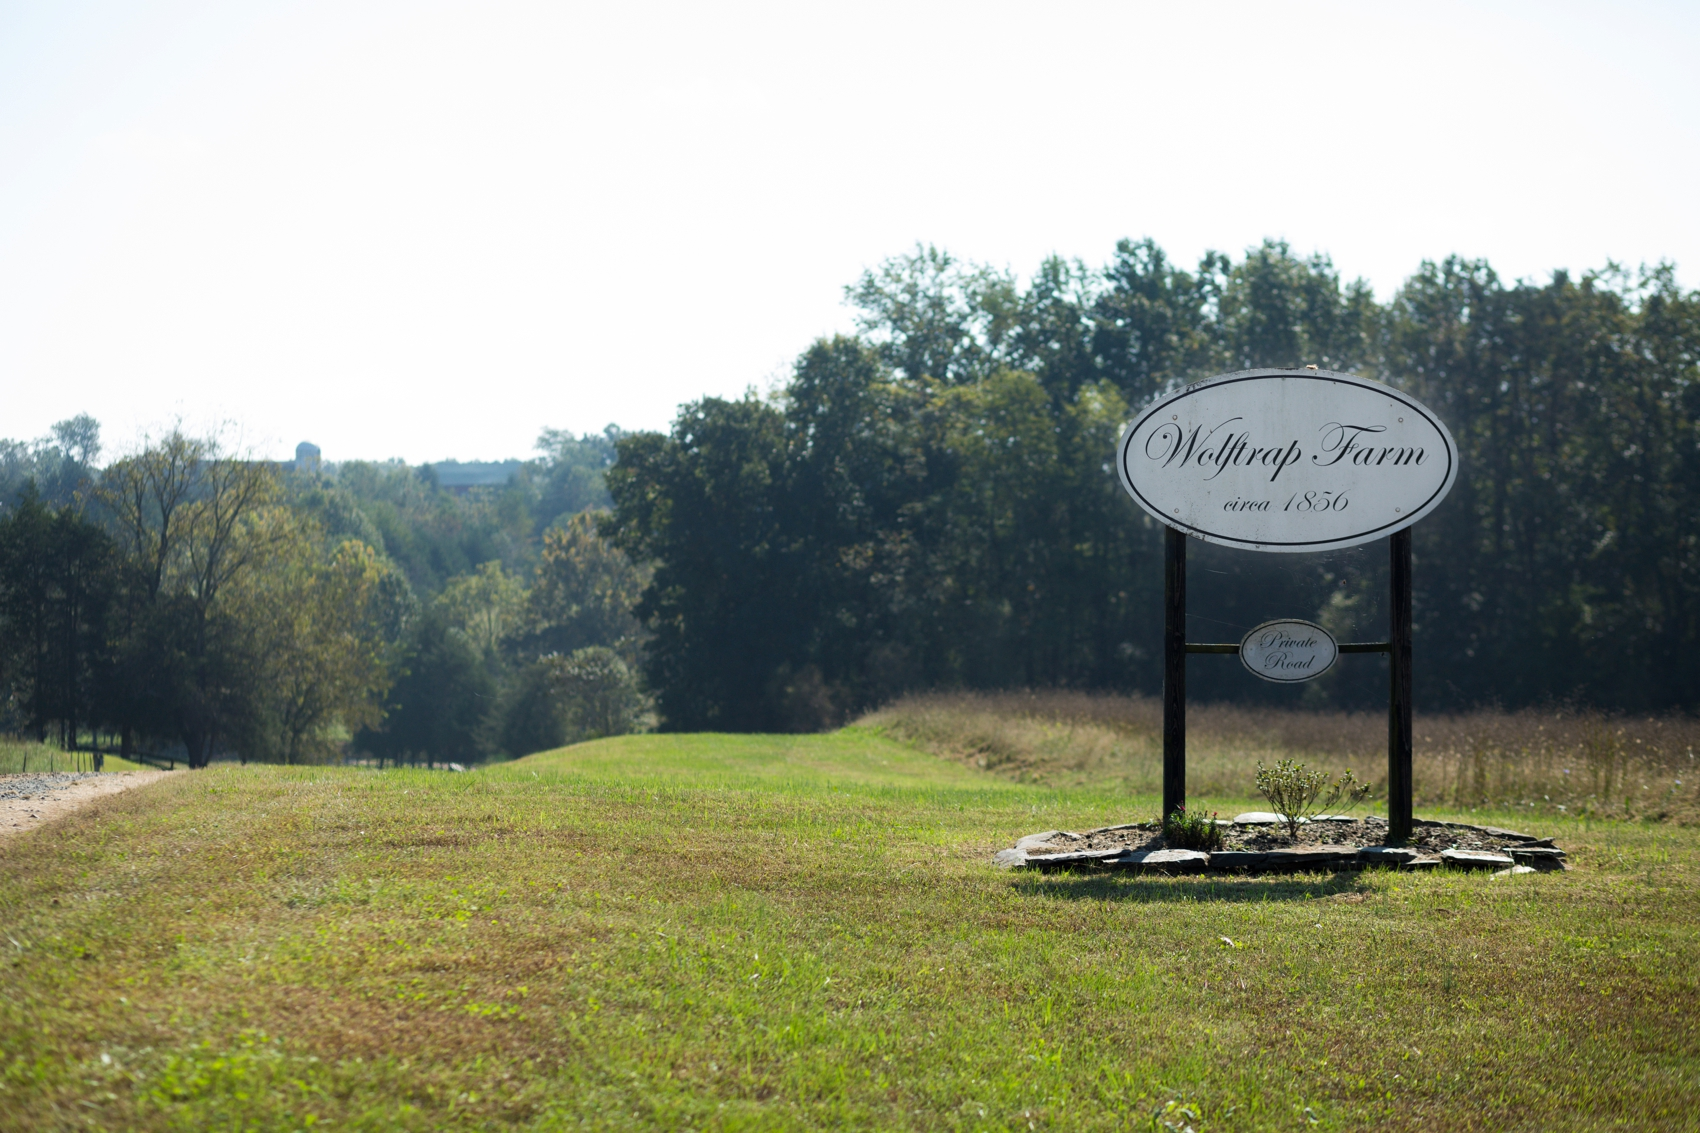 Wolftrap-Farm-Wedding-0279.jpg